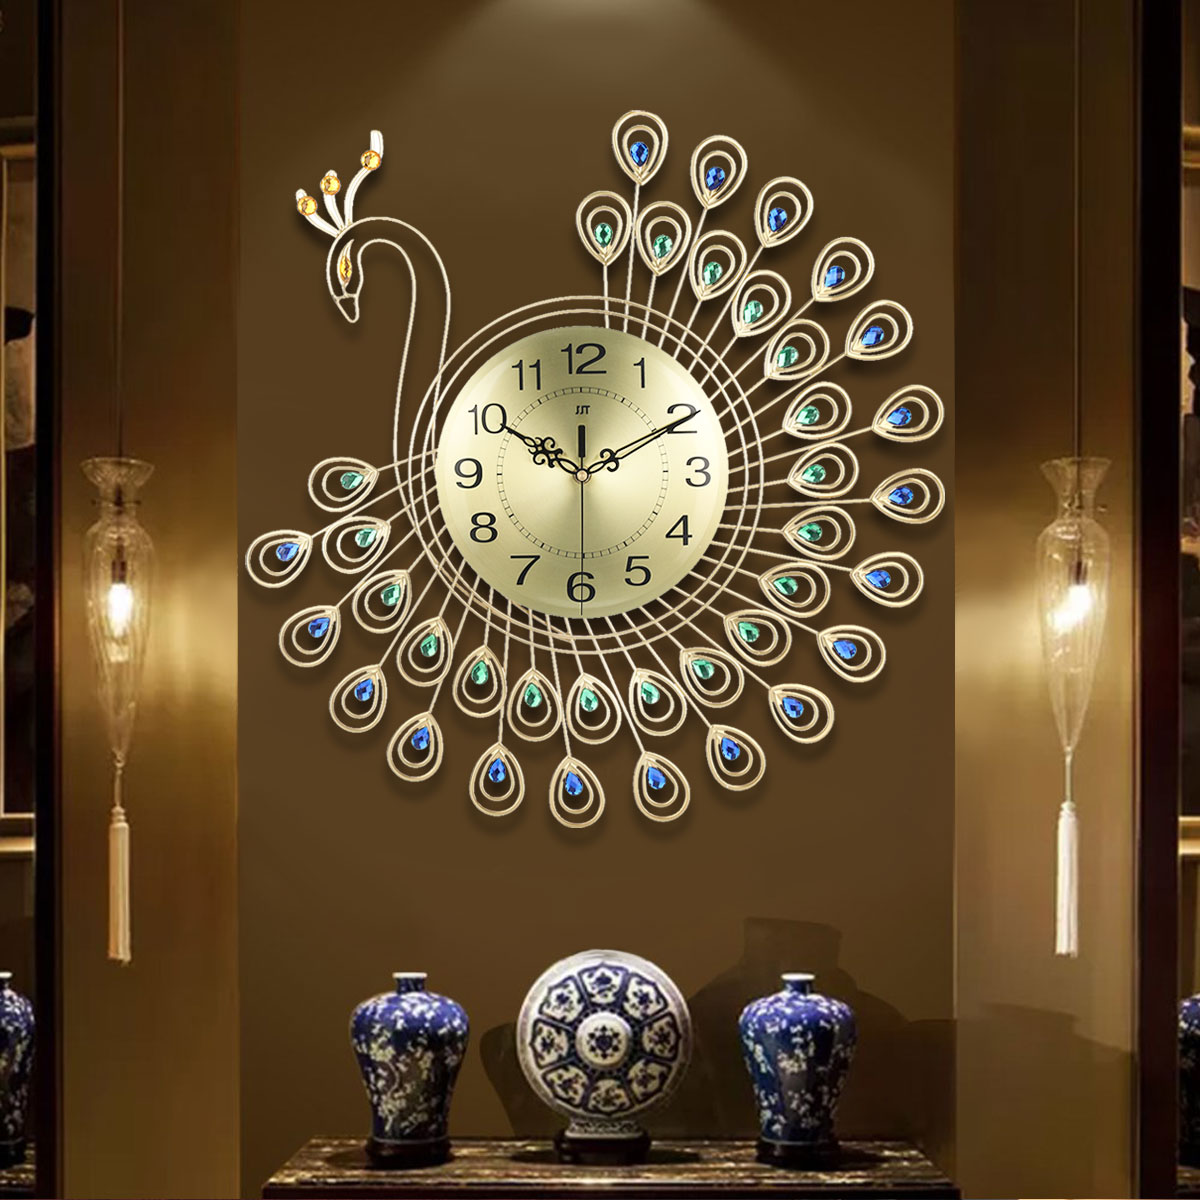 3D Gold Diamond Peacock Wall Clock Metal Watch for Home Living Room Decoration Large DIY Clocks Crafts Ornaments Gift 53x53cm3D Gold Diamond Peacock Wall Clock Metal Watch for Home Living Room Decoration Large DIY Clocks Crafts Ornaments Gift 53x53cm